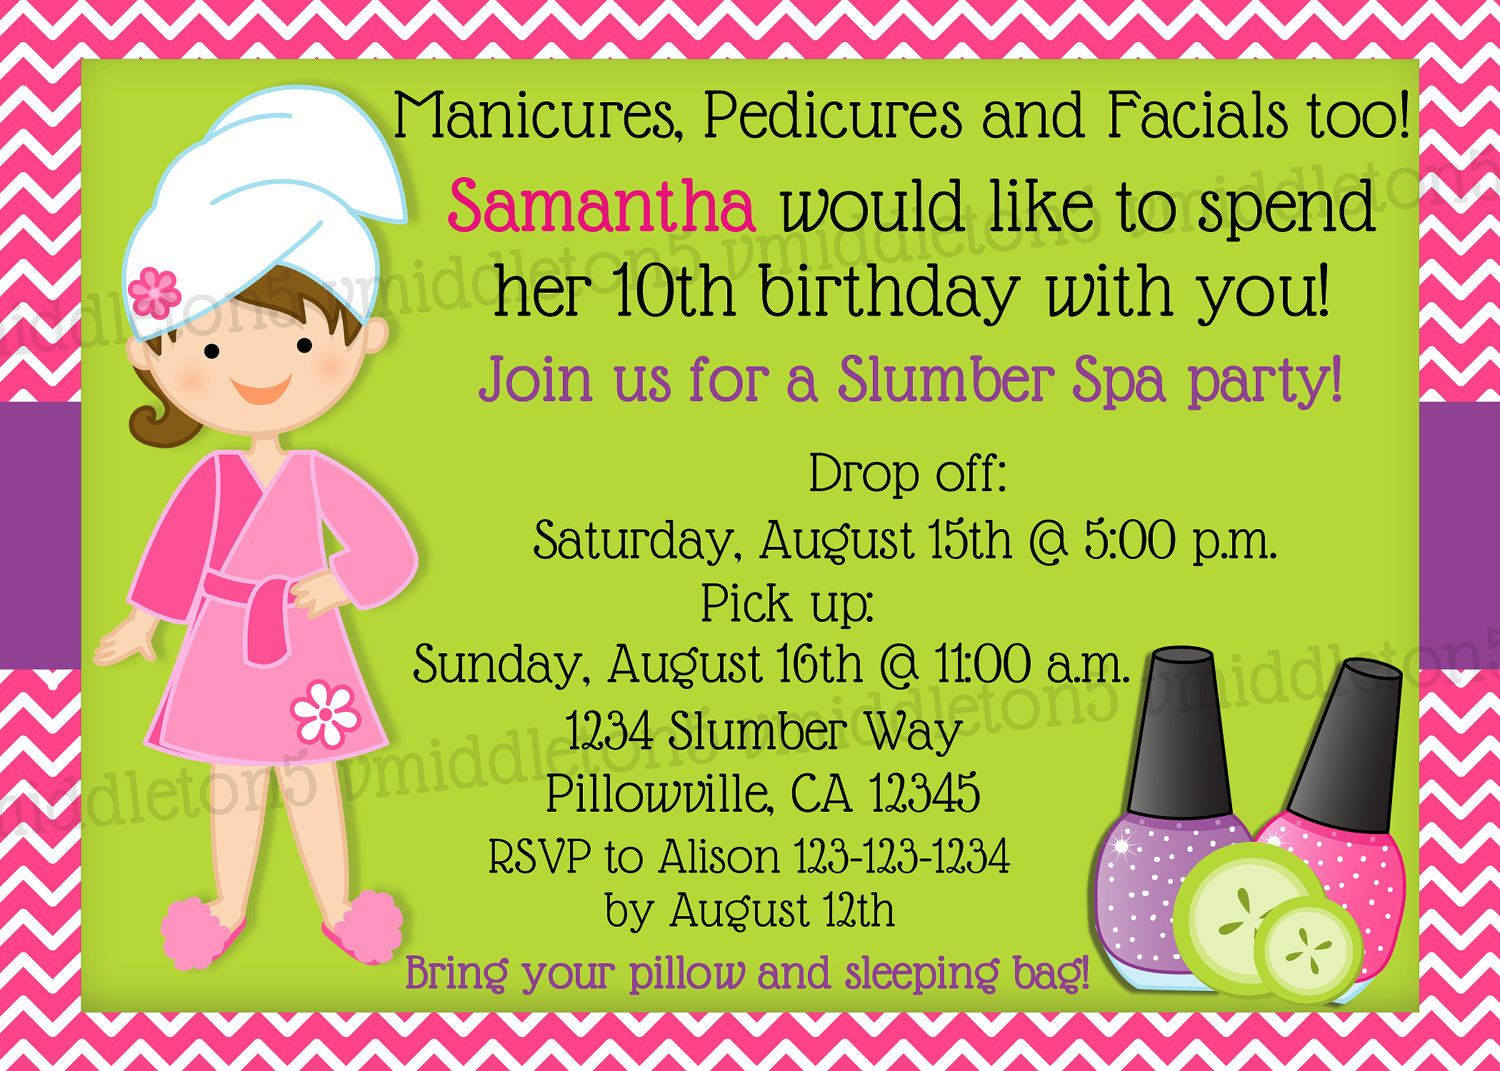 Slumber party spa party birthday invitation print your own 5x7 or slumber party spa party birthday invitation print your own 5x7 or 4x6 monicamarmolfo Image collections